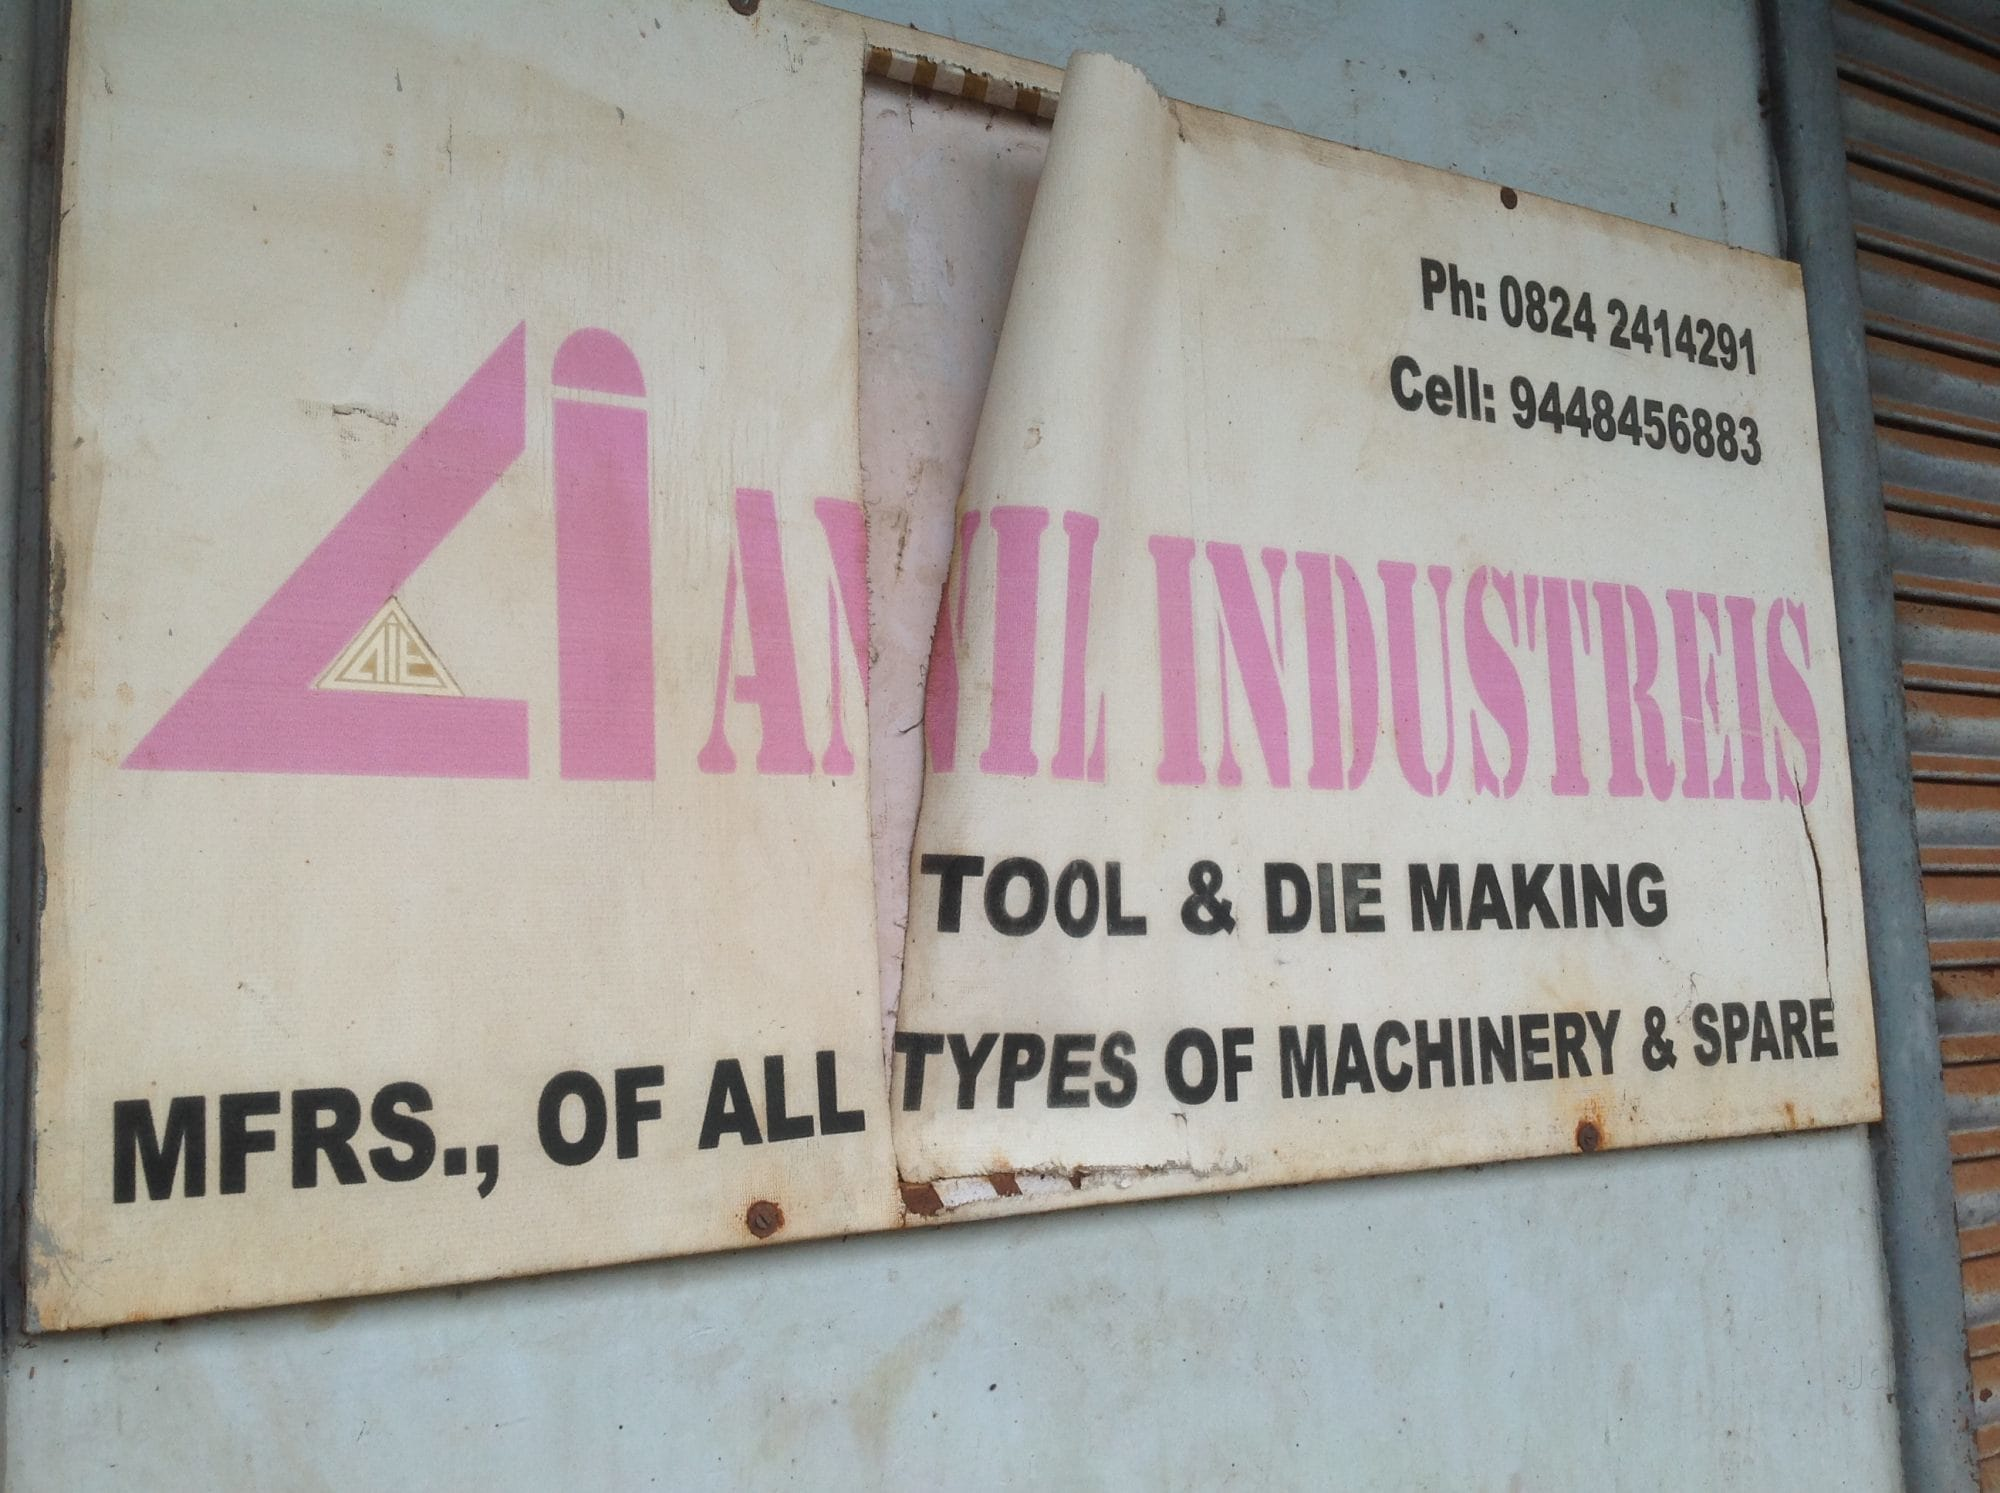 Top 20 Lathe Machine Job Works in Pandeshwar - Best Lathe